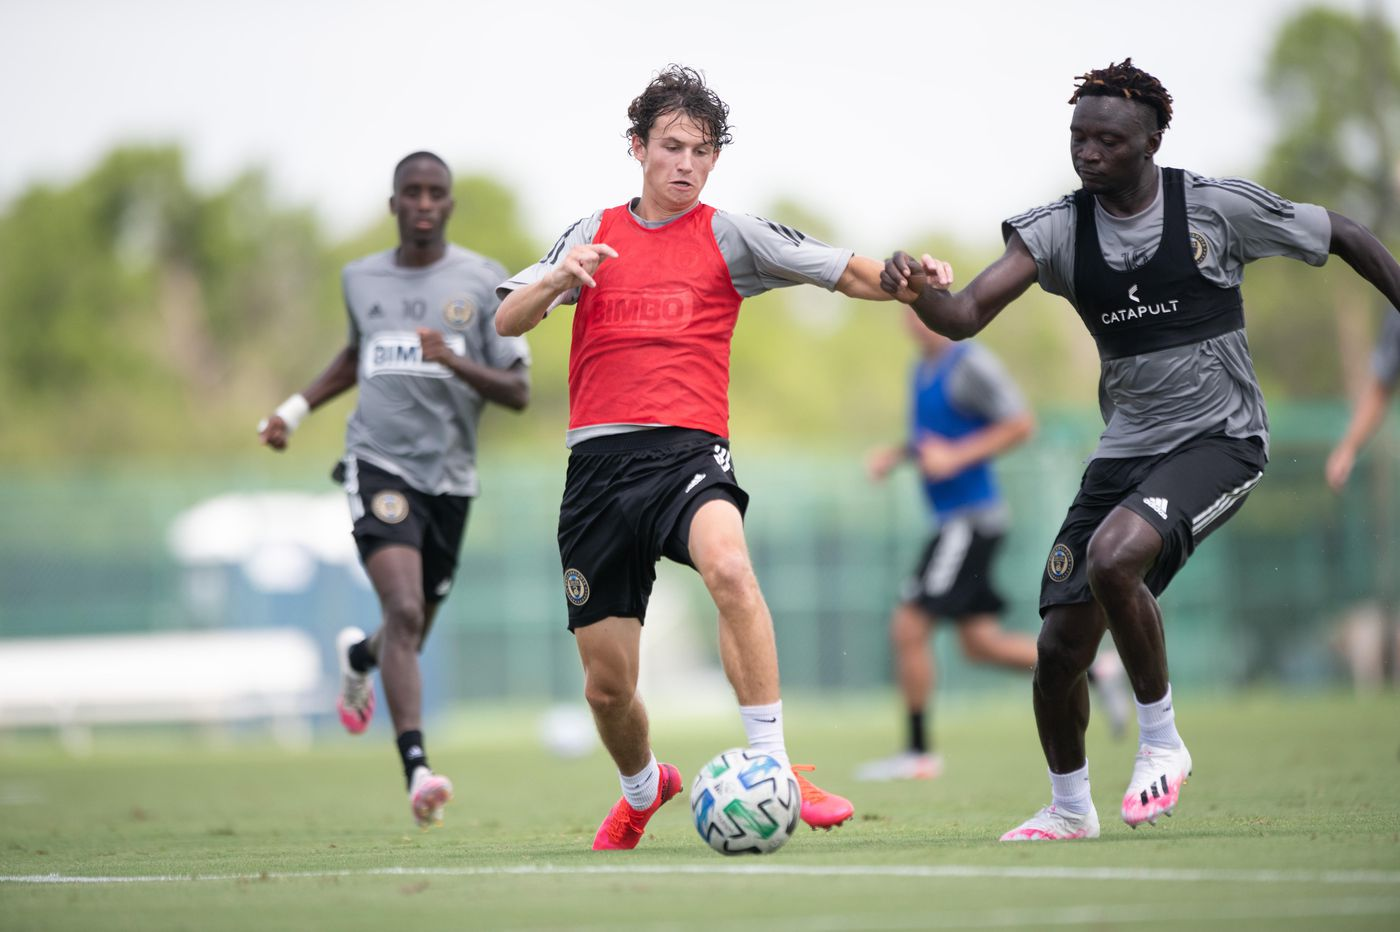 The Union bring live Philadelphia sports back with their first game in Major League Soccer's Orlando tournament